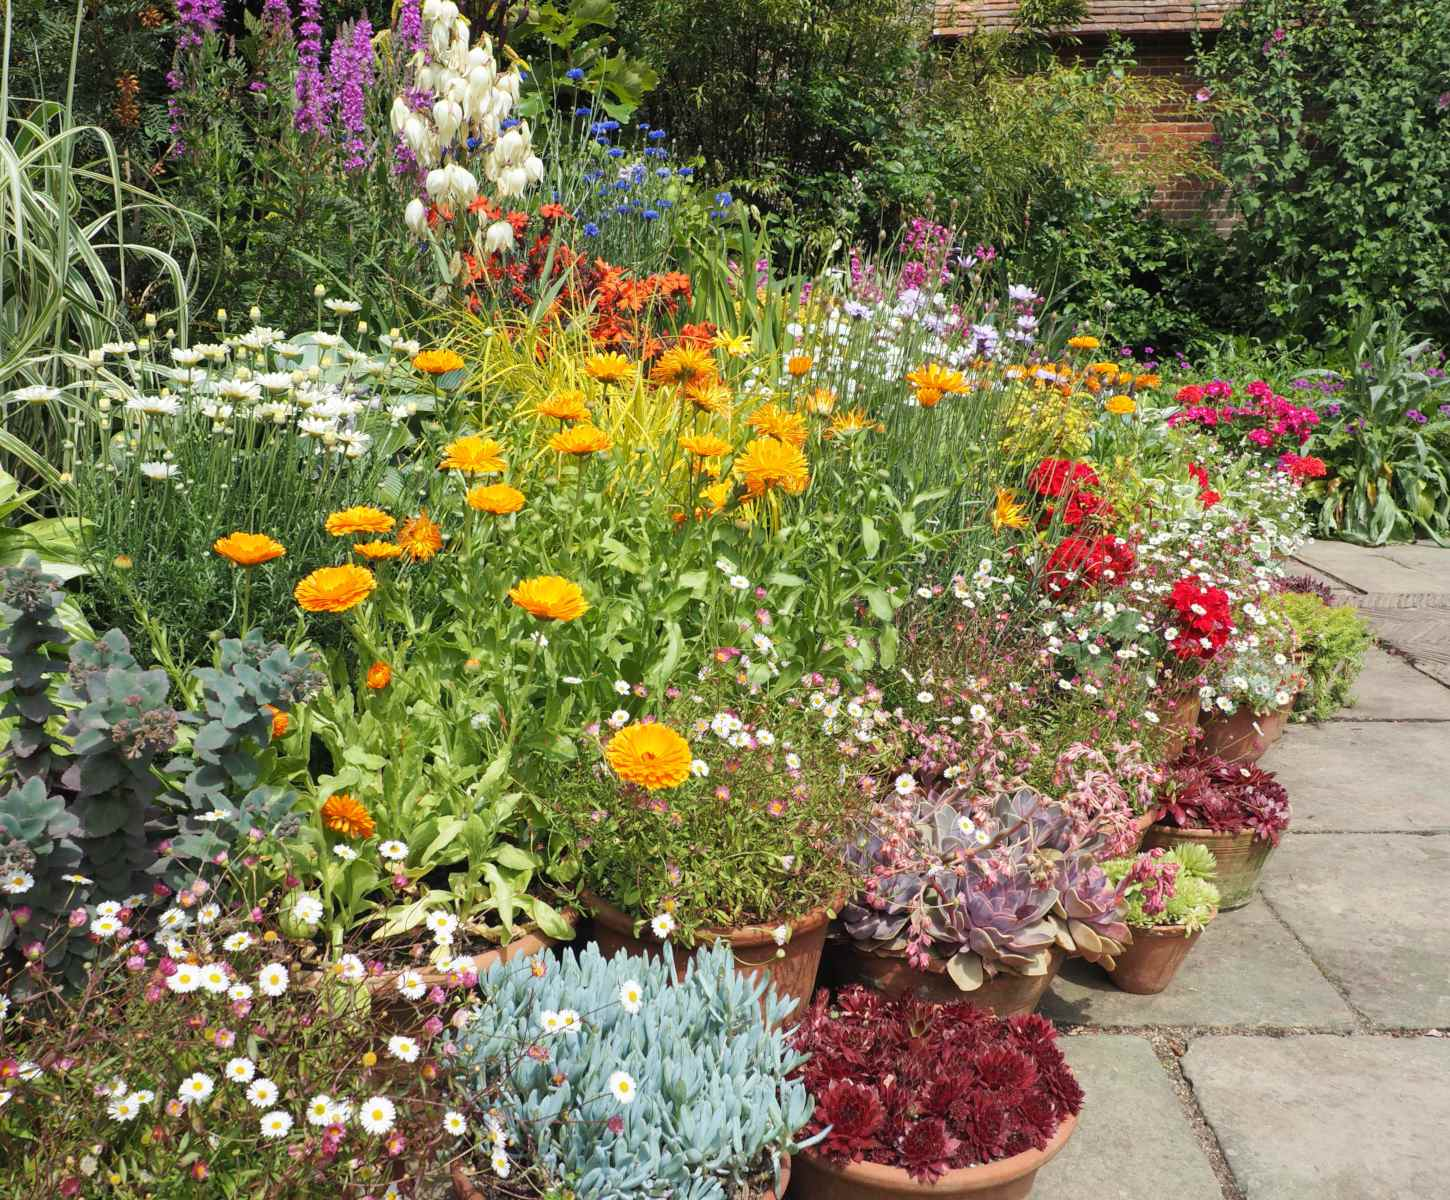 Summer in the garden, all the tasks best done in July